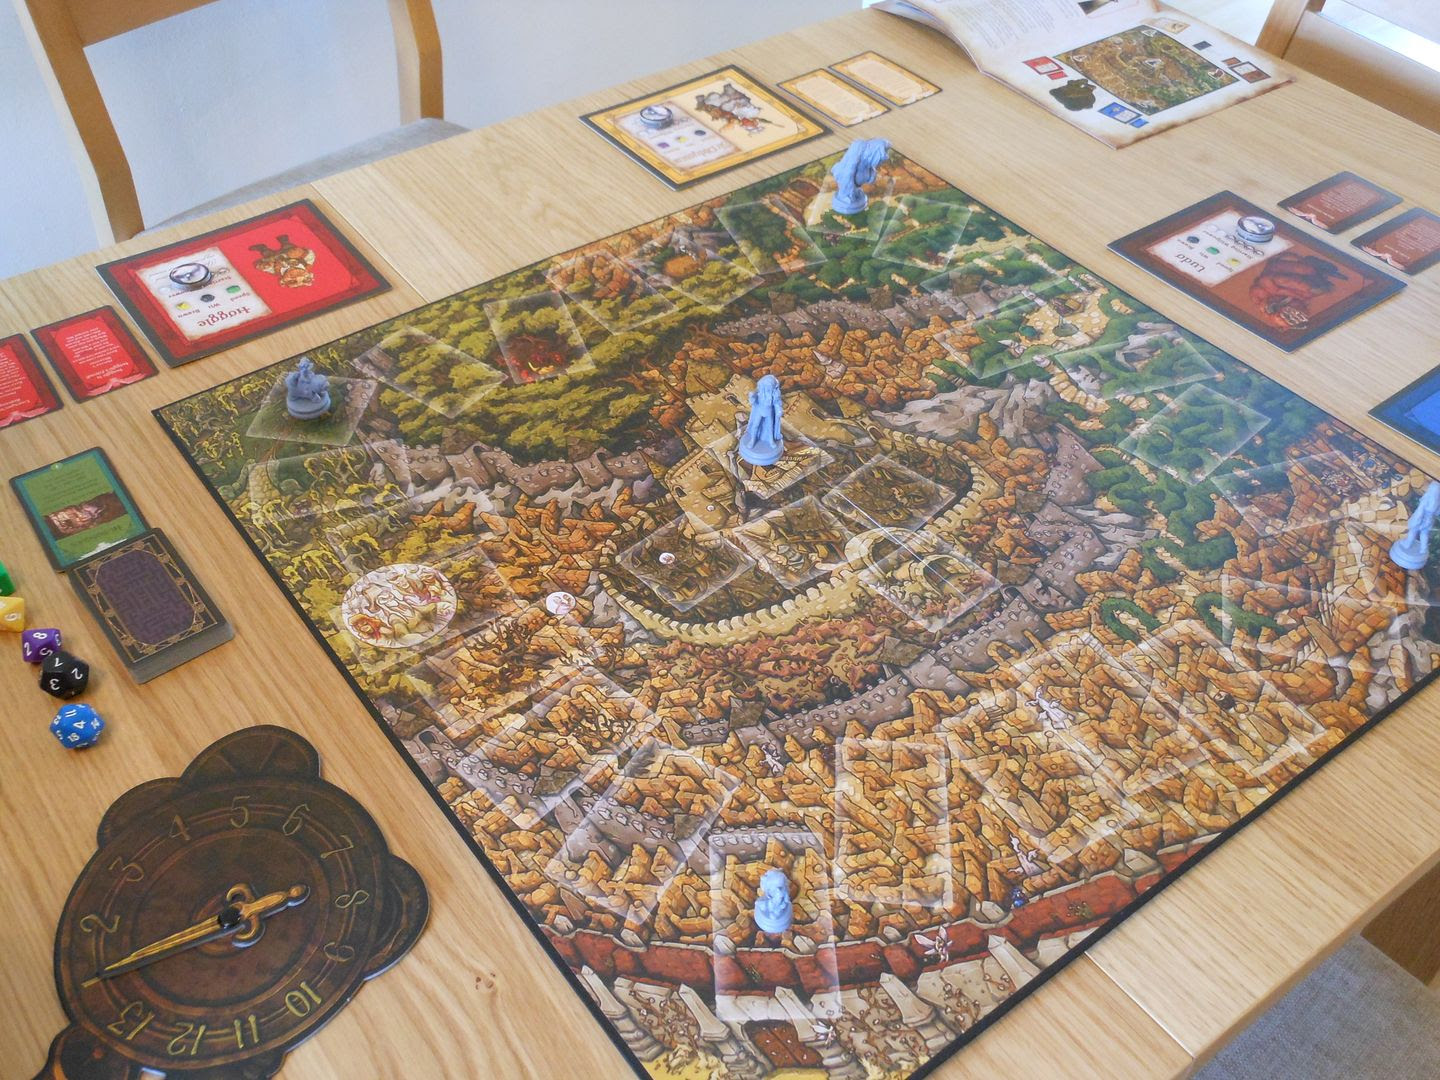 Jim Henson's Labyrinth: The Board Game set up and ready to play.